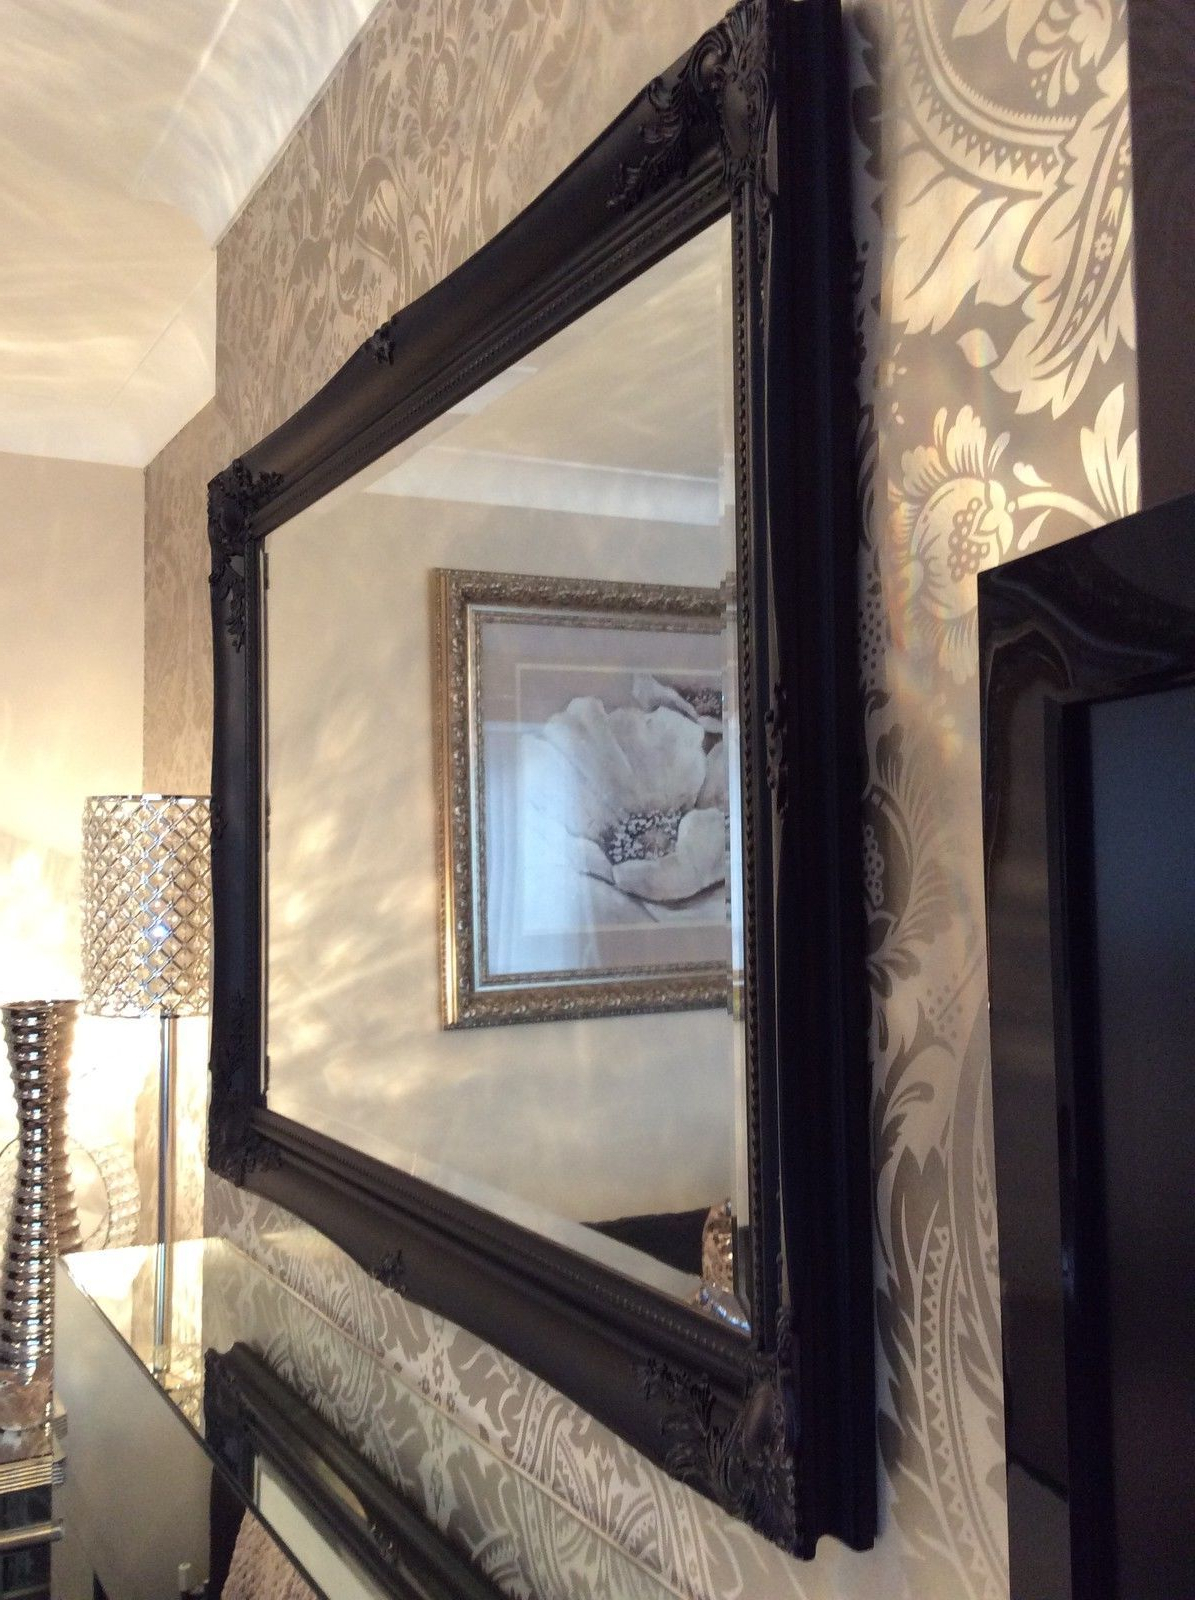 Most Popular Large Black Stunning Decorative Swept Wall Mirror – Bevelled Glass *new* Pertaining To Decorative Black Wall Mirrors (View 4 of 20)